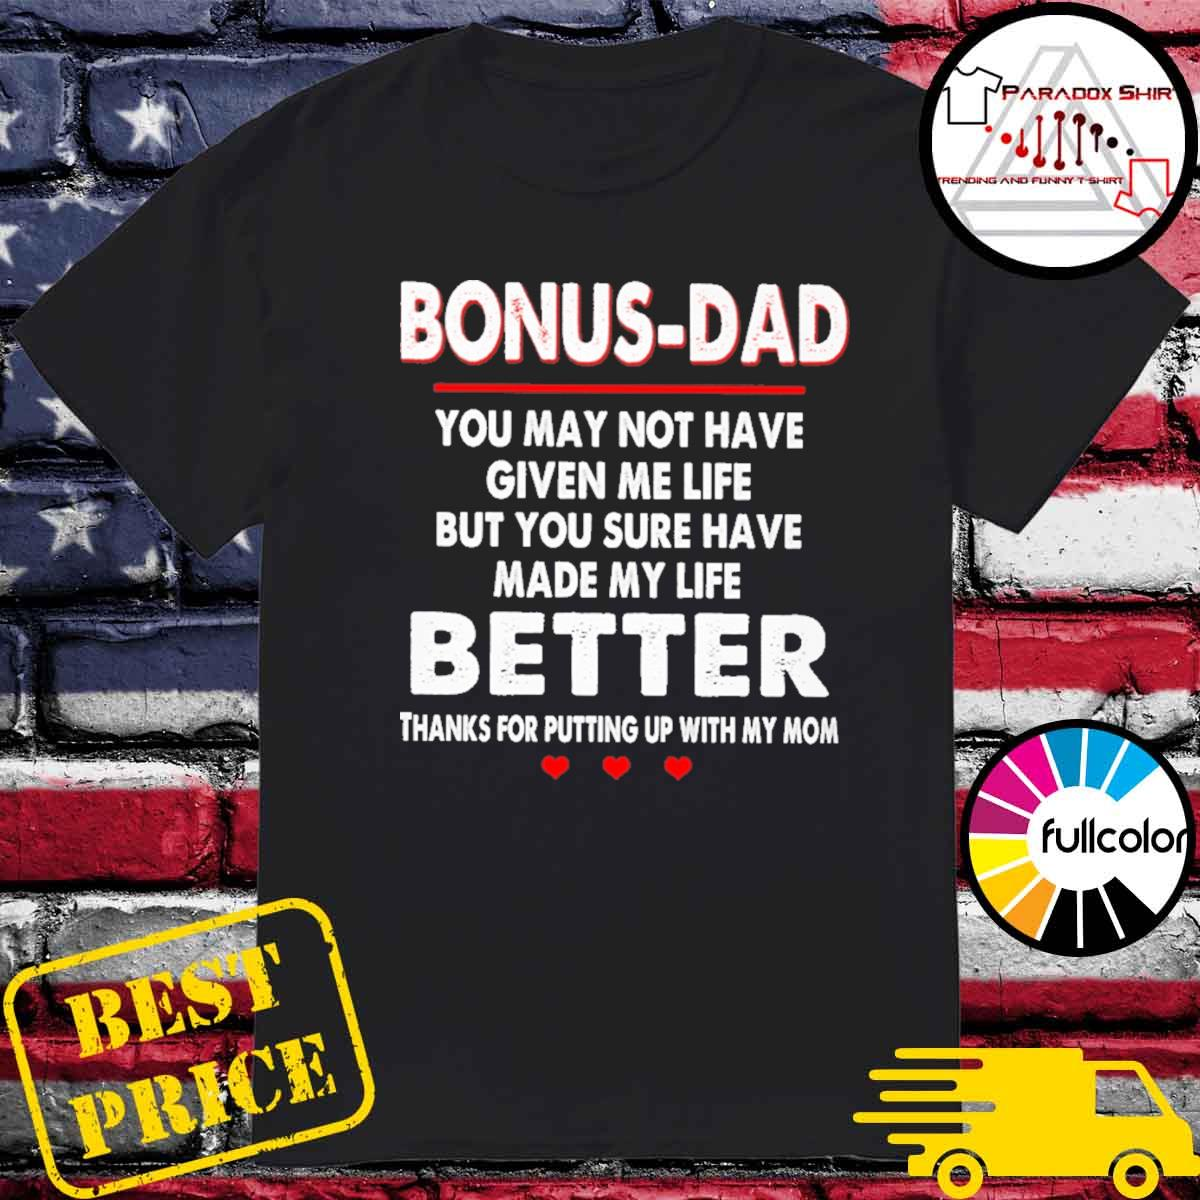 Bonus-Dad you may not have given me life but you sure have made my life better thanks for putting up with my mom shirt